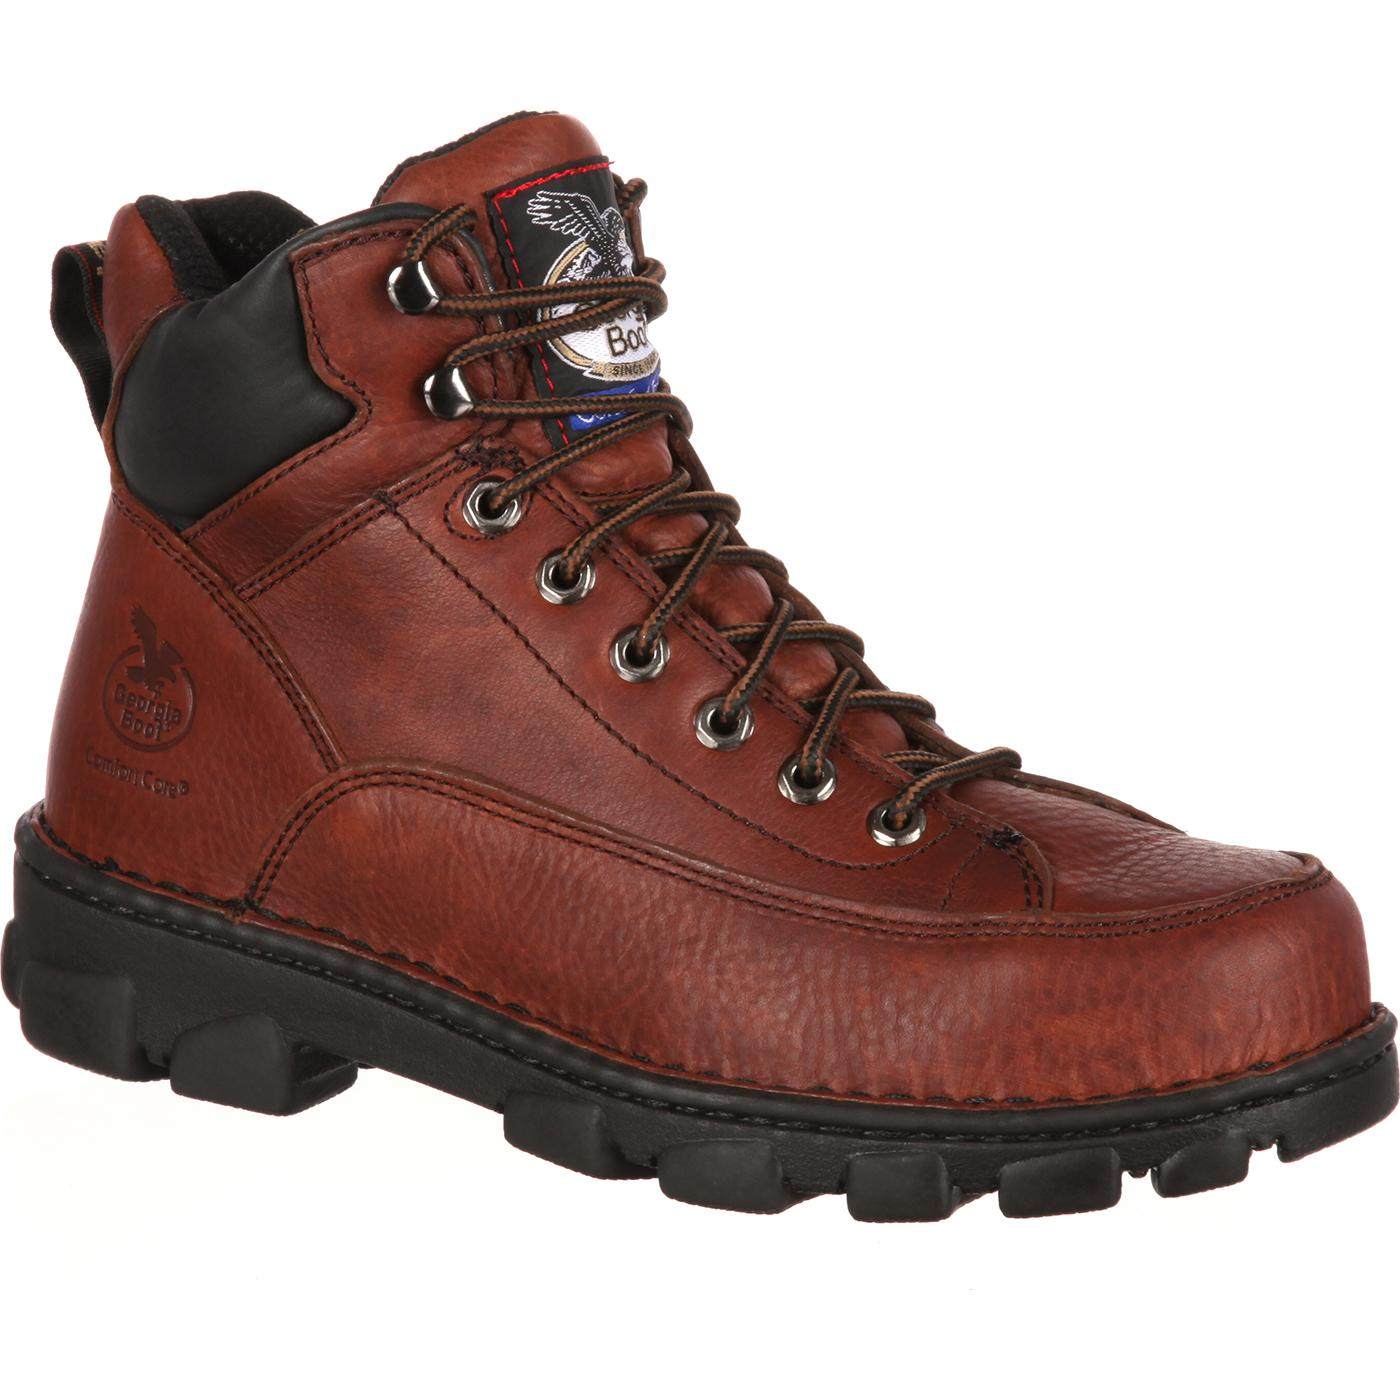 Georgia Boot: Men&39s Eagle Light Steel Toe Work Boots - Style G6395